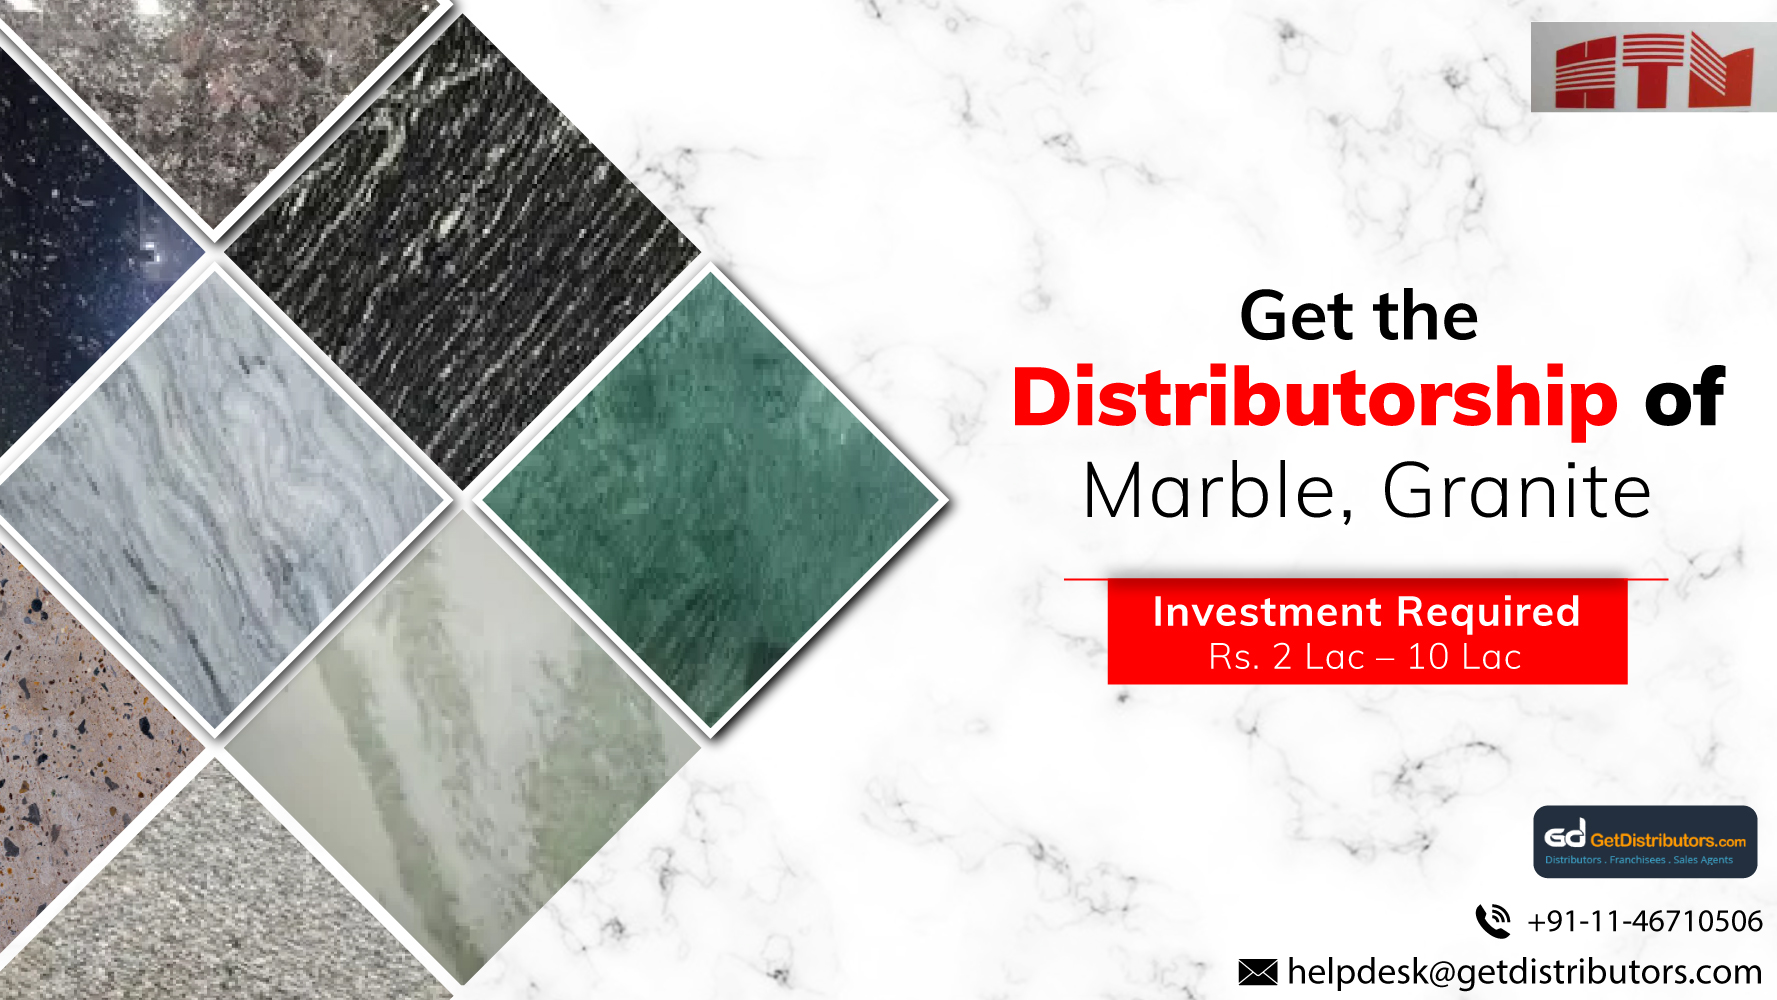 Avail Best In Class Granite And Marble That Are Eye-Catching And Long Lasting